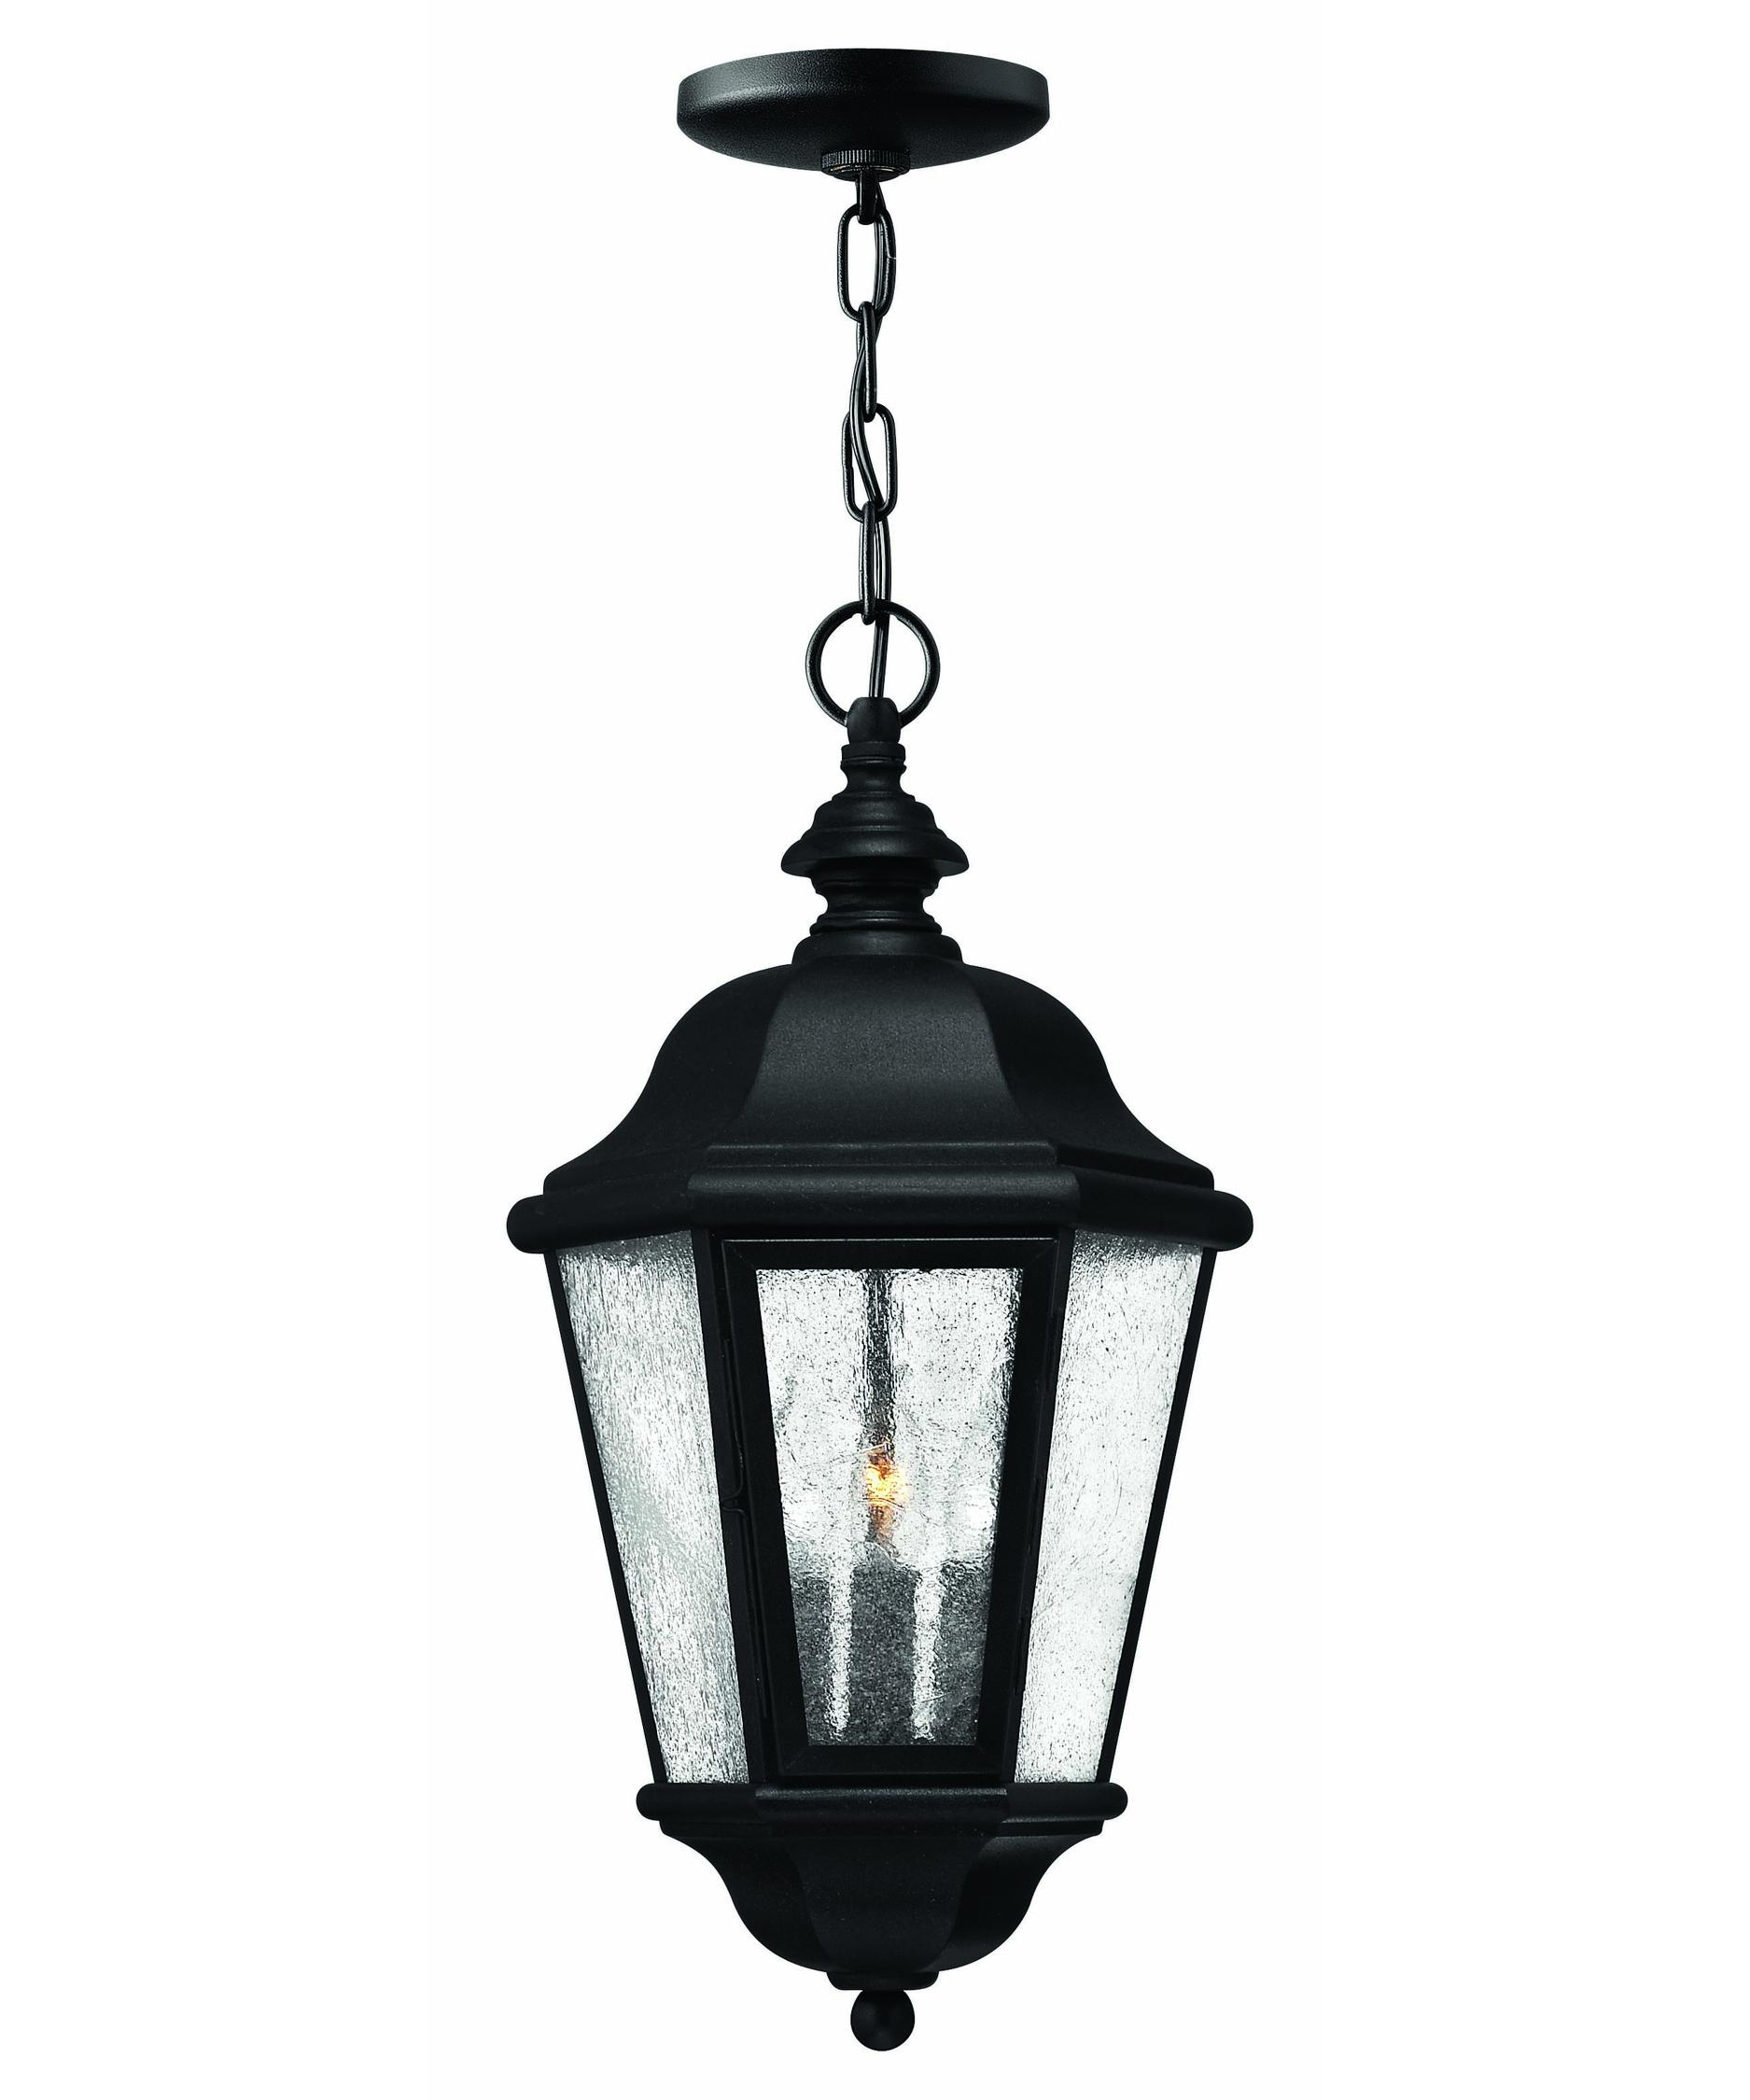 Popular Photo of Outdoor Hanging Lamps